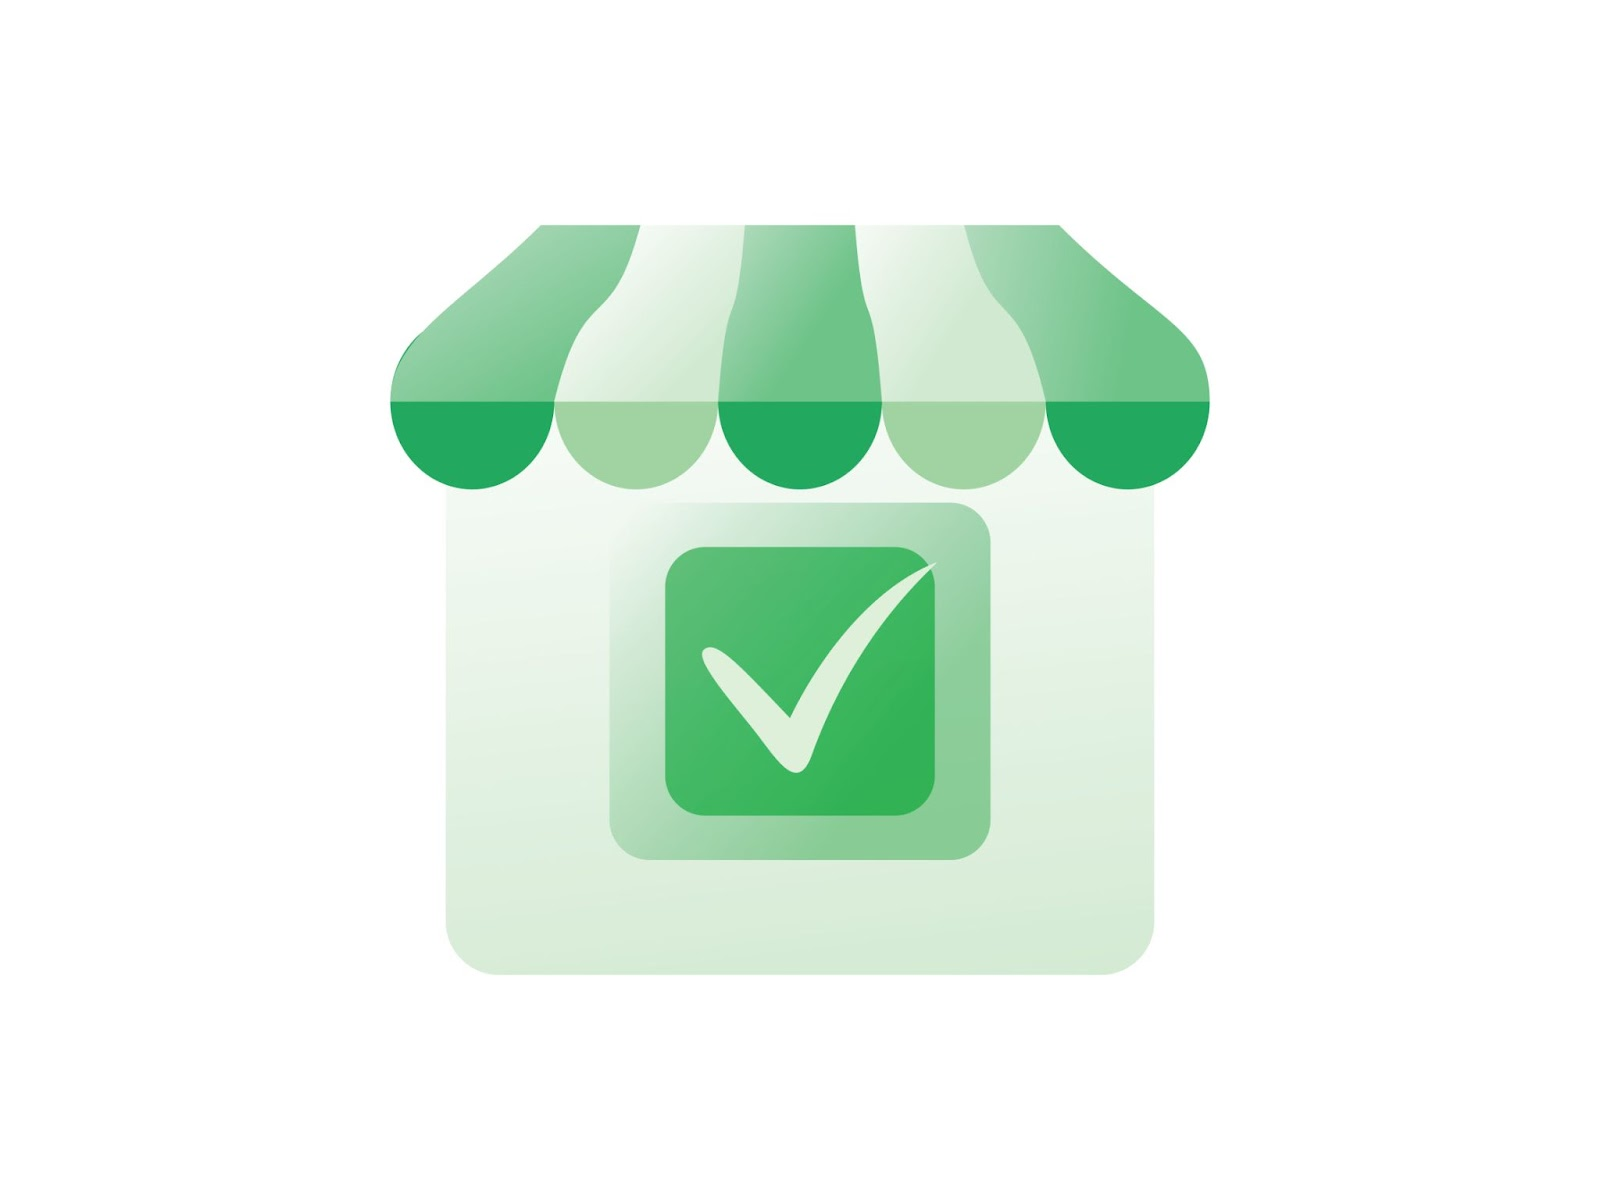 Google mybusiness icon with green check